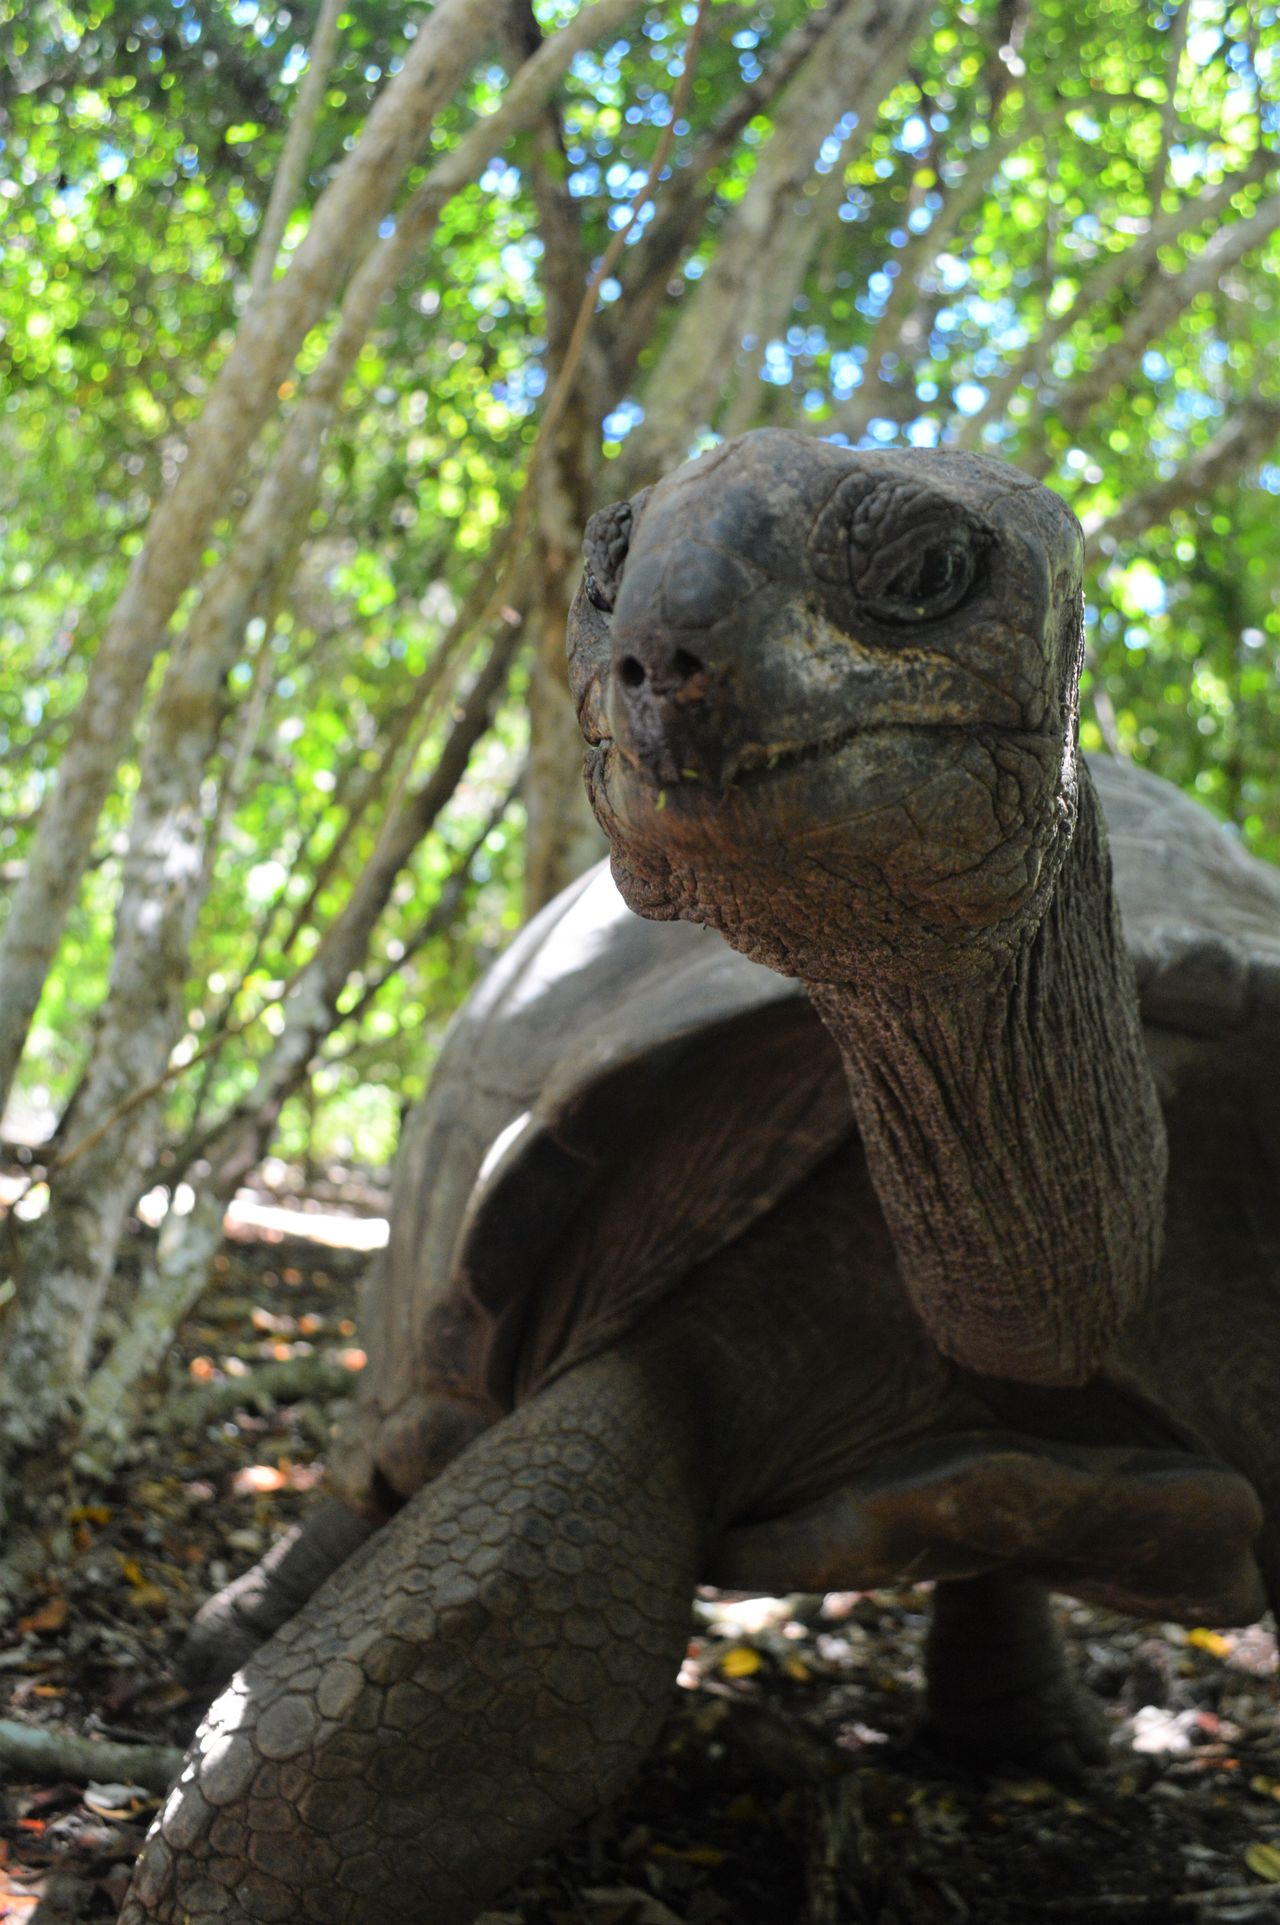 Animal Themes Animal Wildlife Animals In The Wild Close-up Day Forest Nature No People Old Age One Animal Outdoors Prision Island Reptile Tortoise Turtle Zanzibar